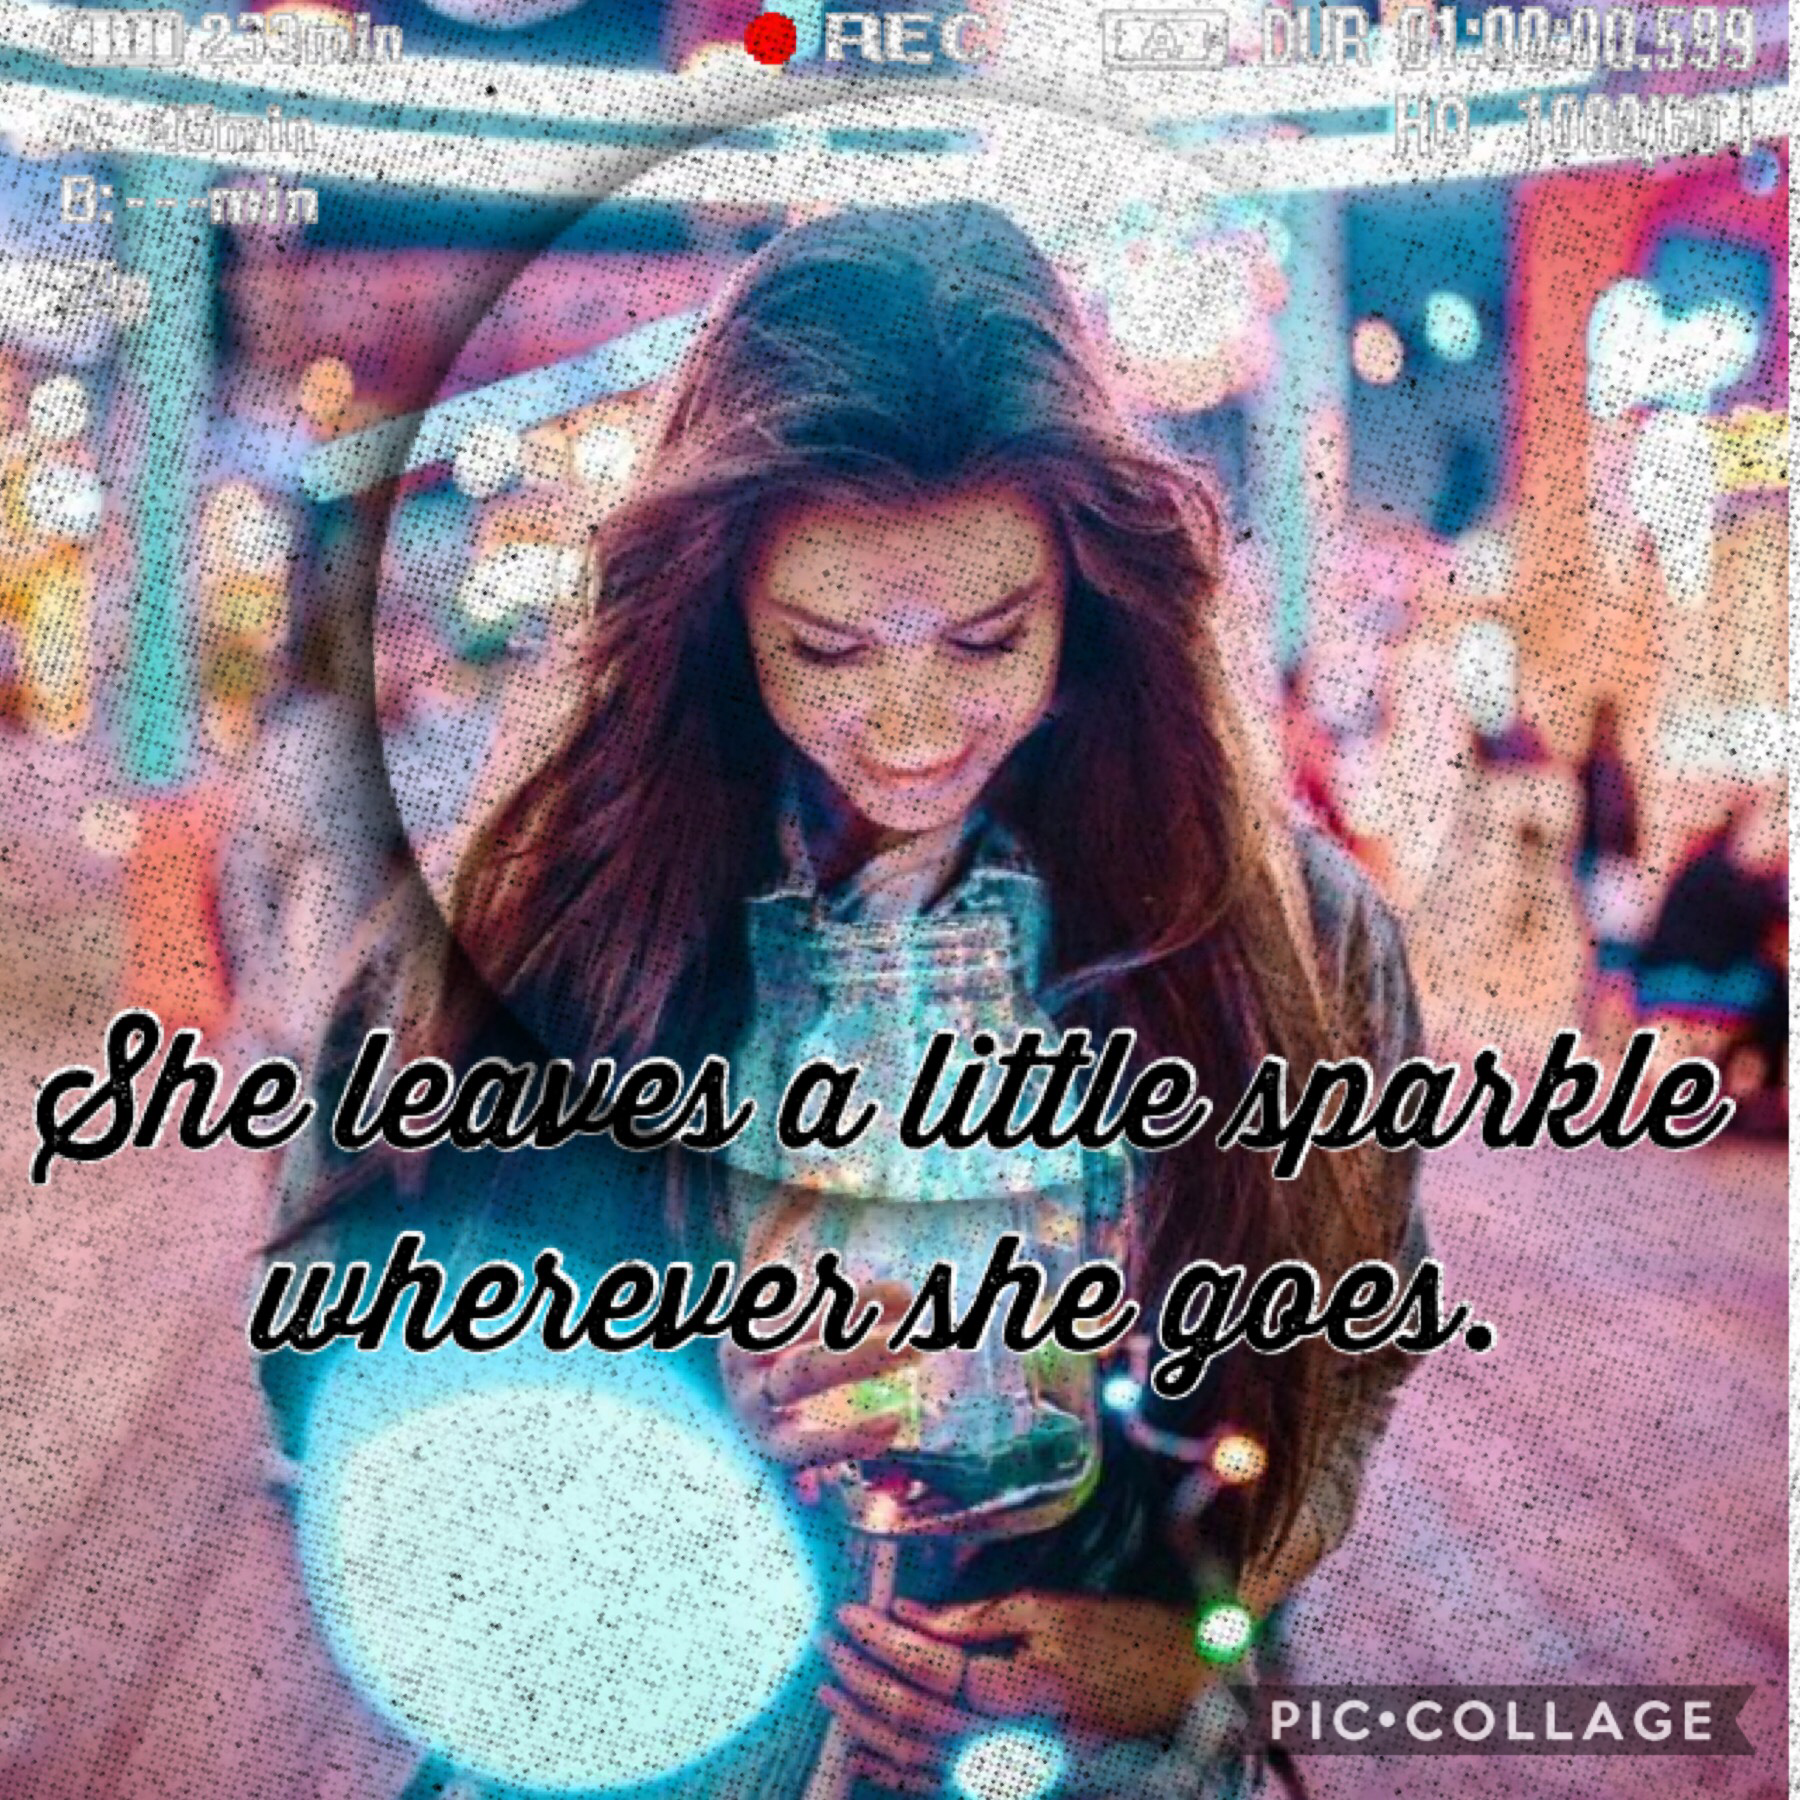 Dedicated to Unknown_Nae-Edits!